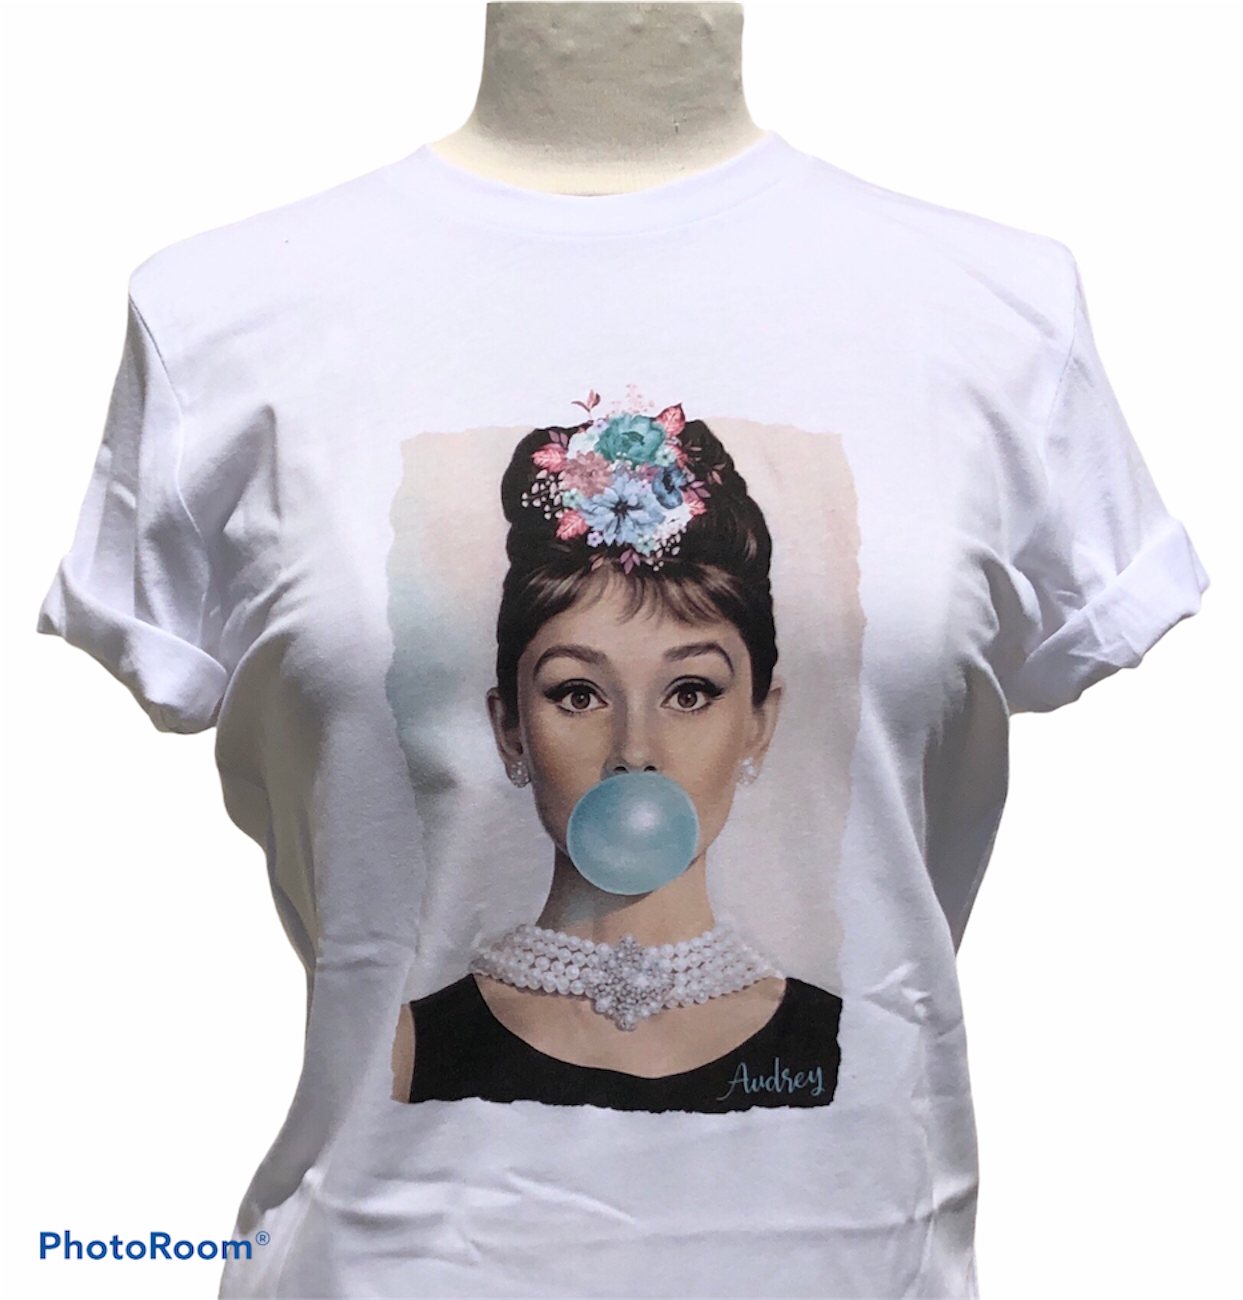 Audrey Bubble Gum T-Shirt